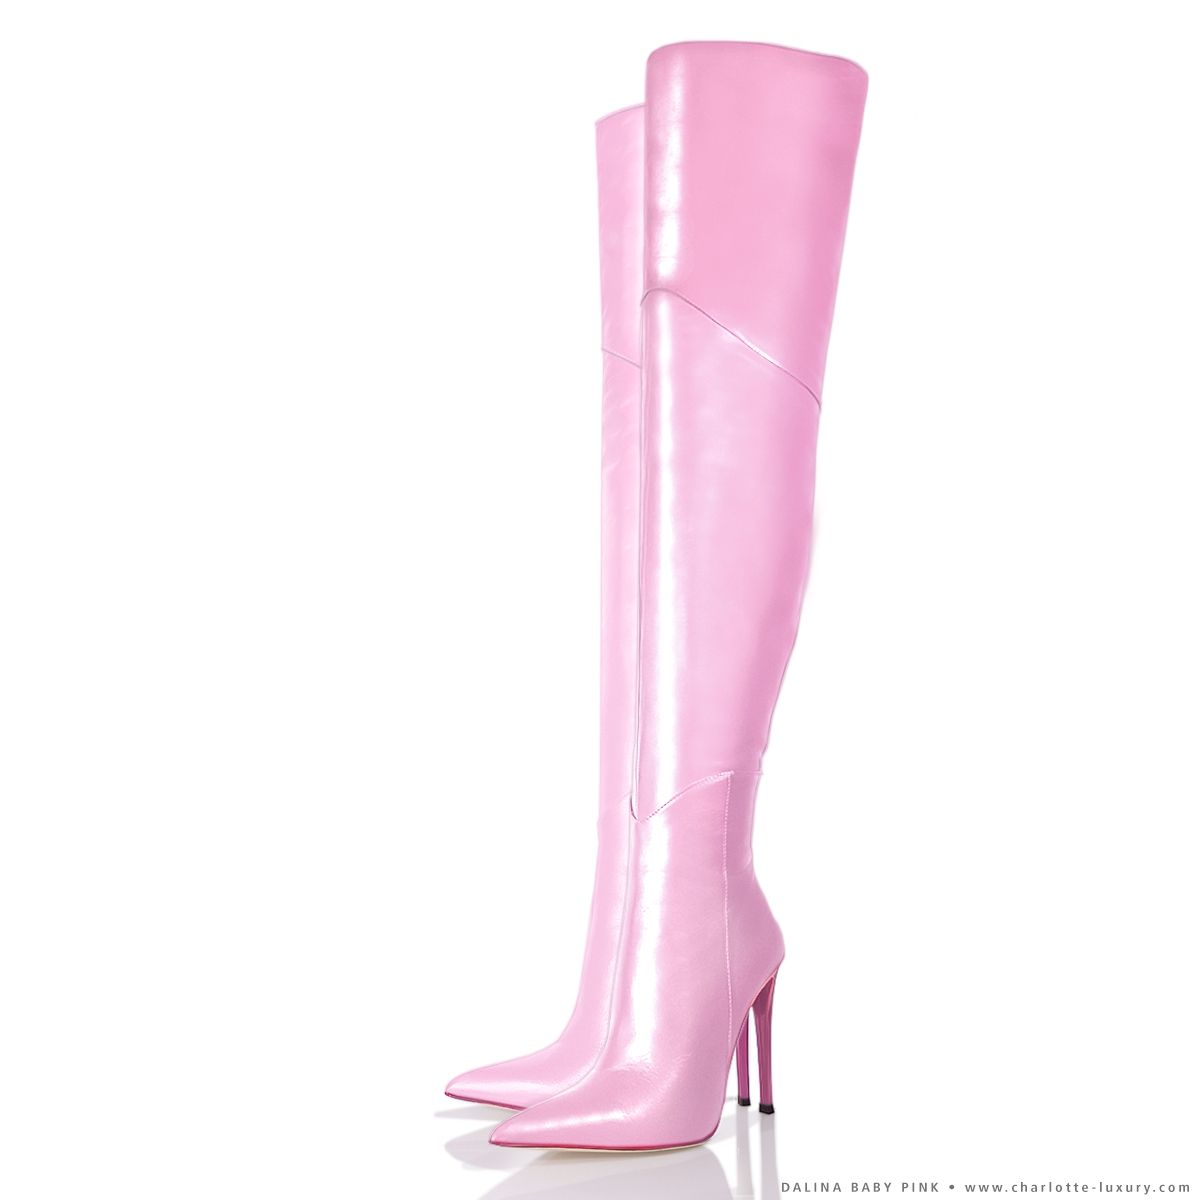 Dalina Baby Pink thigh high boots. Custom made thigh high boots ...